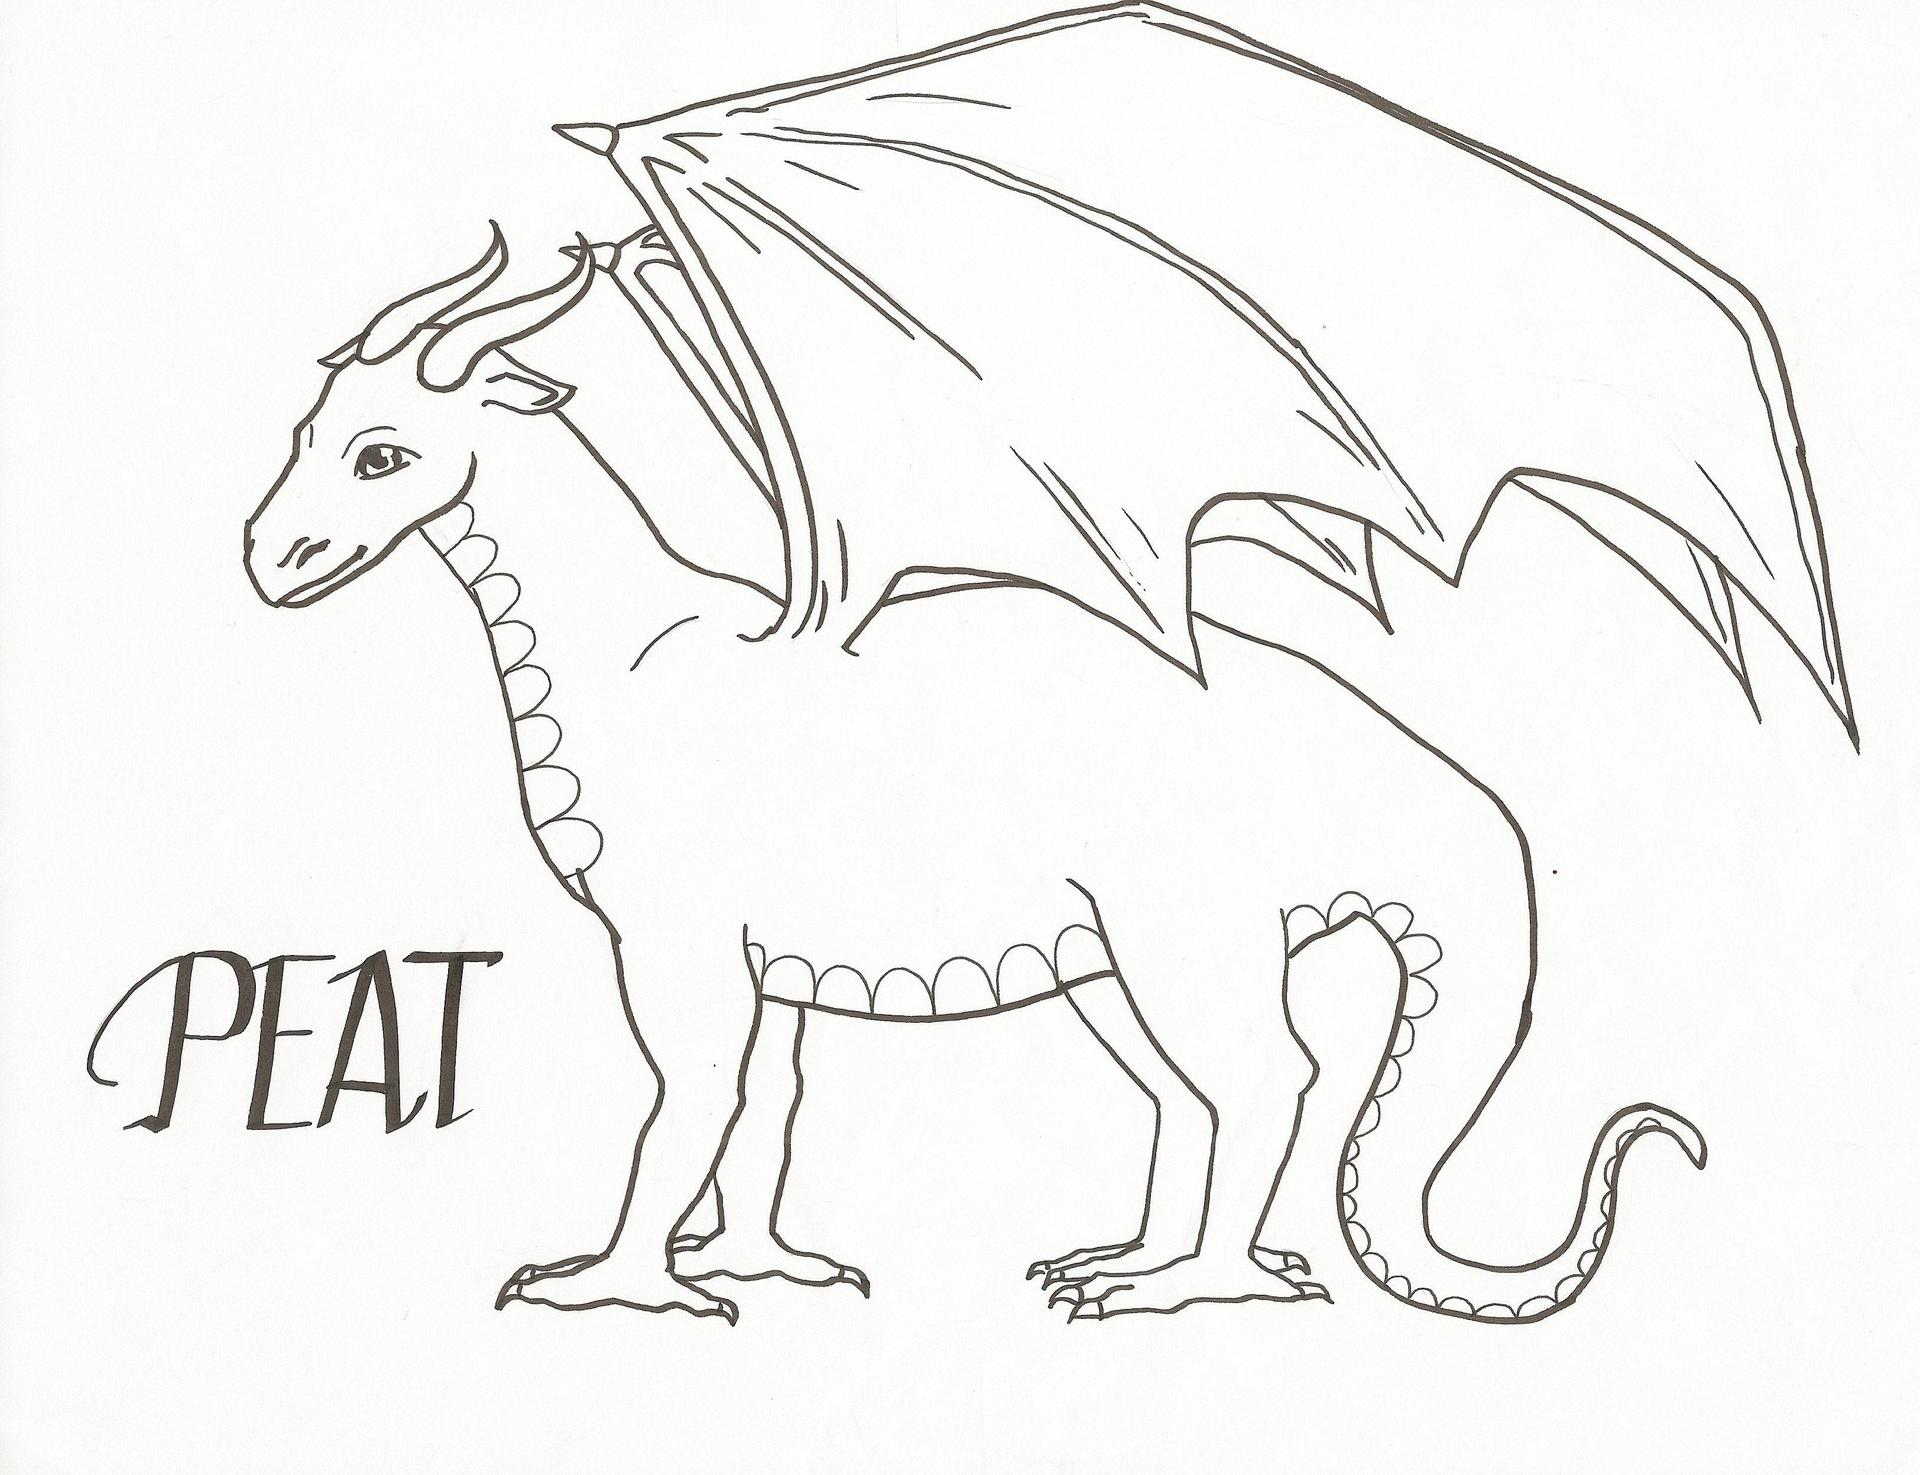 PEAT THE DRAGON